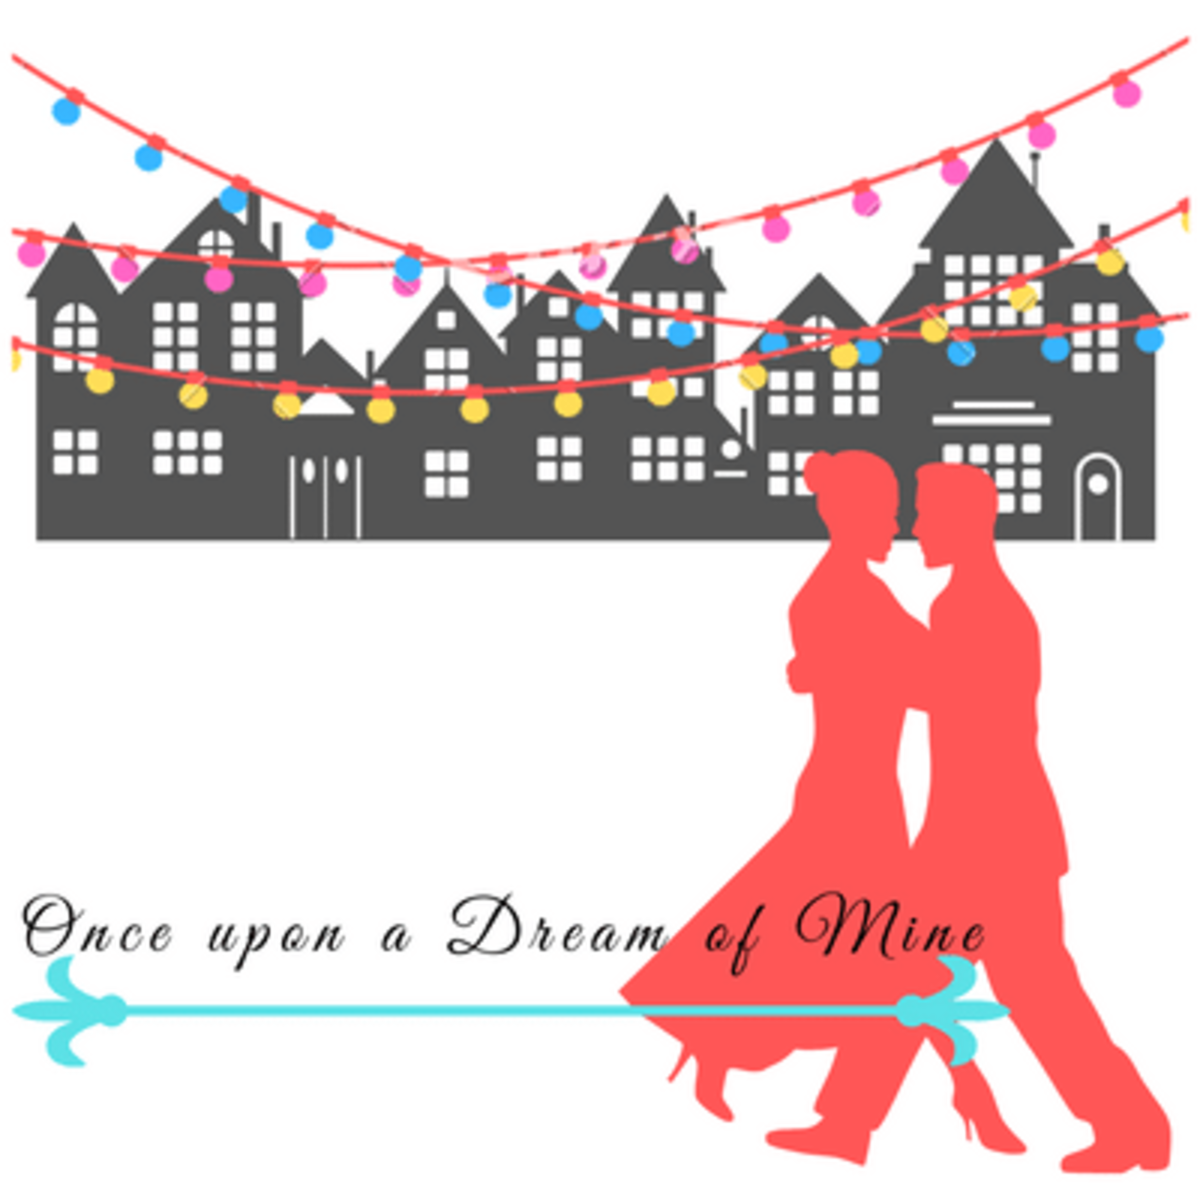 Once upon a Dream of Mine